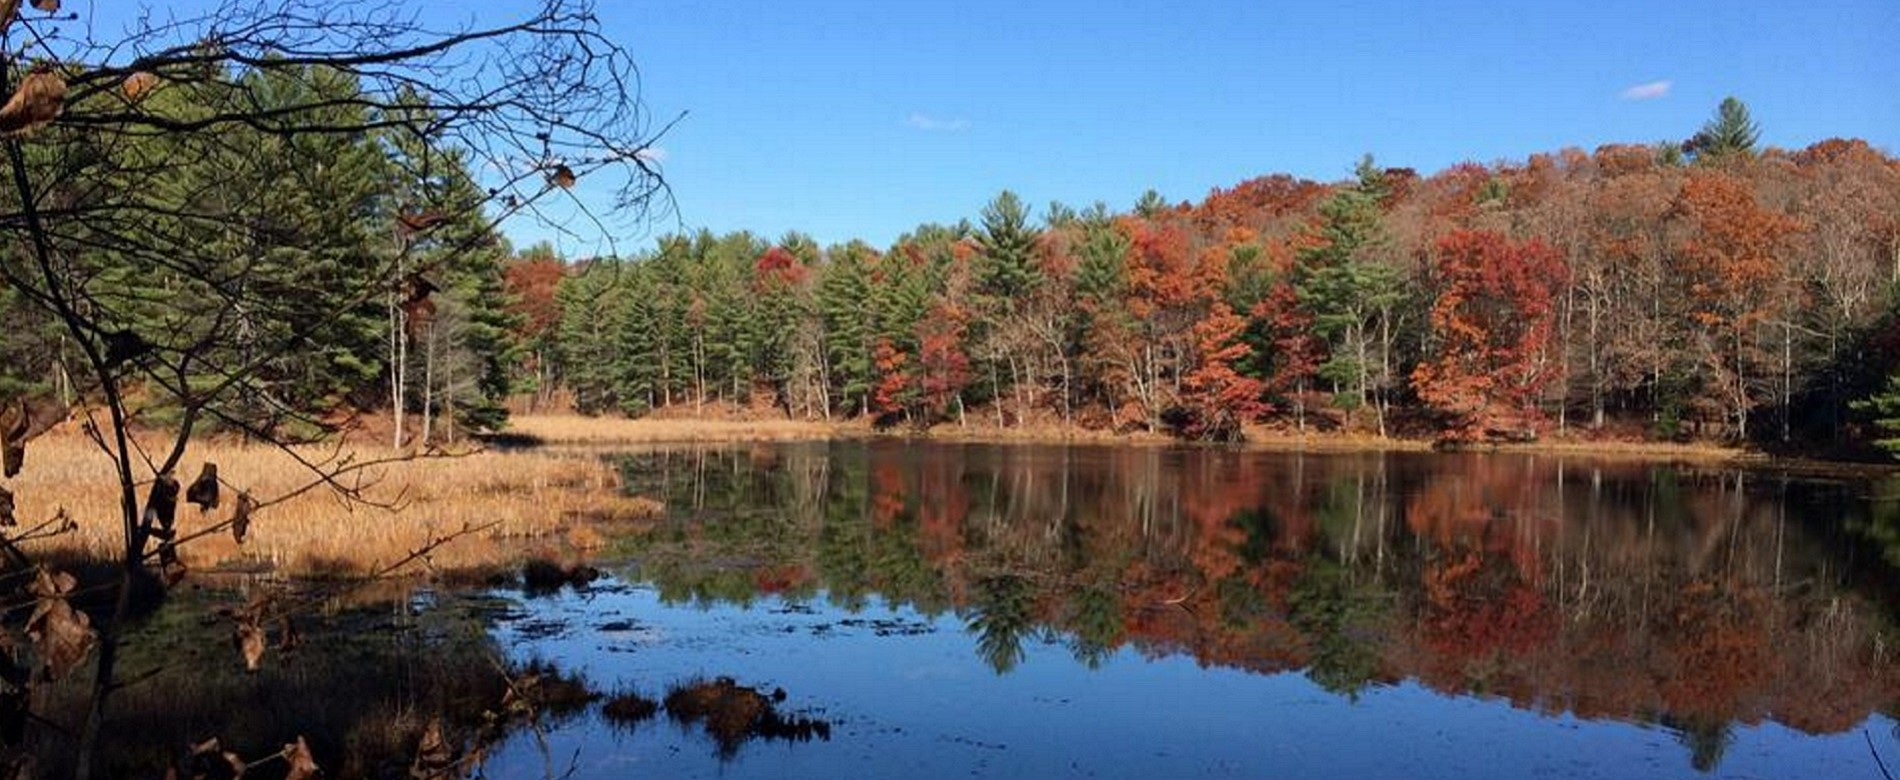 Colorful fall day on Lily Lake in Chenango Valley State Park